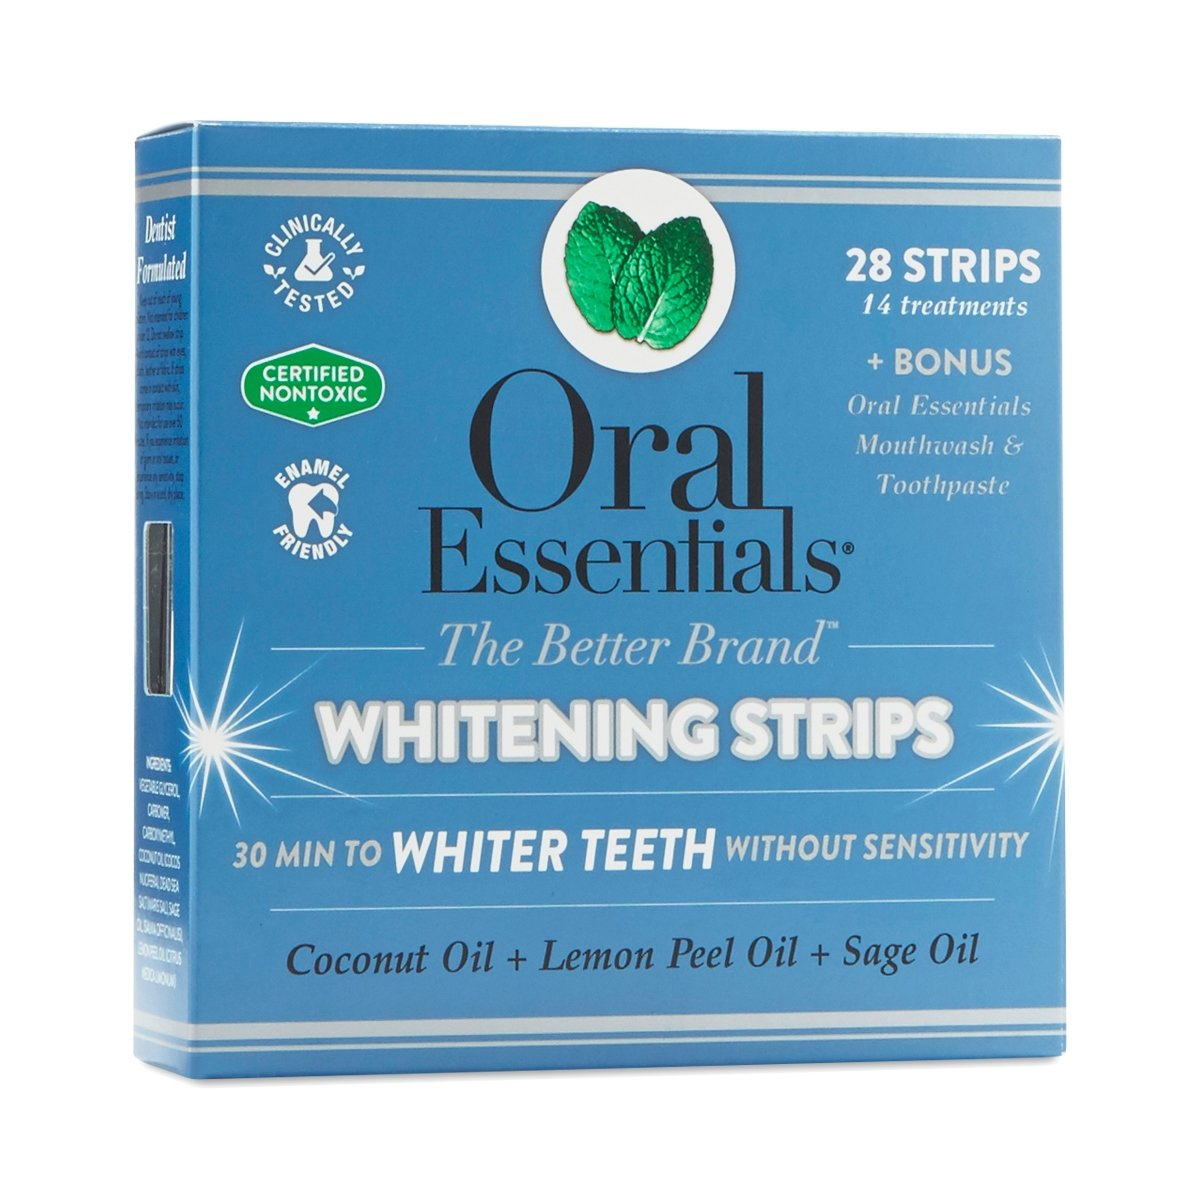 Oral Essentials Whitening Strips 14 Treatments No Sensitivity or Peroxide/Clinically Tested/NonToxic Oral Essentials (Beauty)